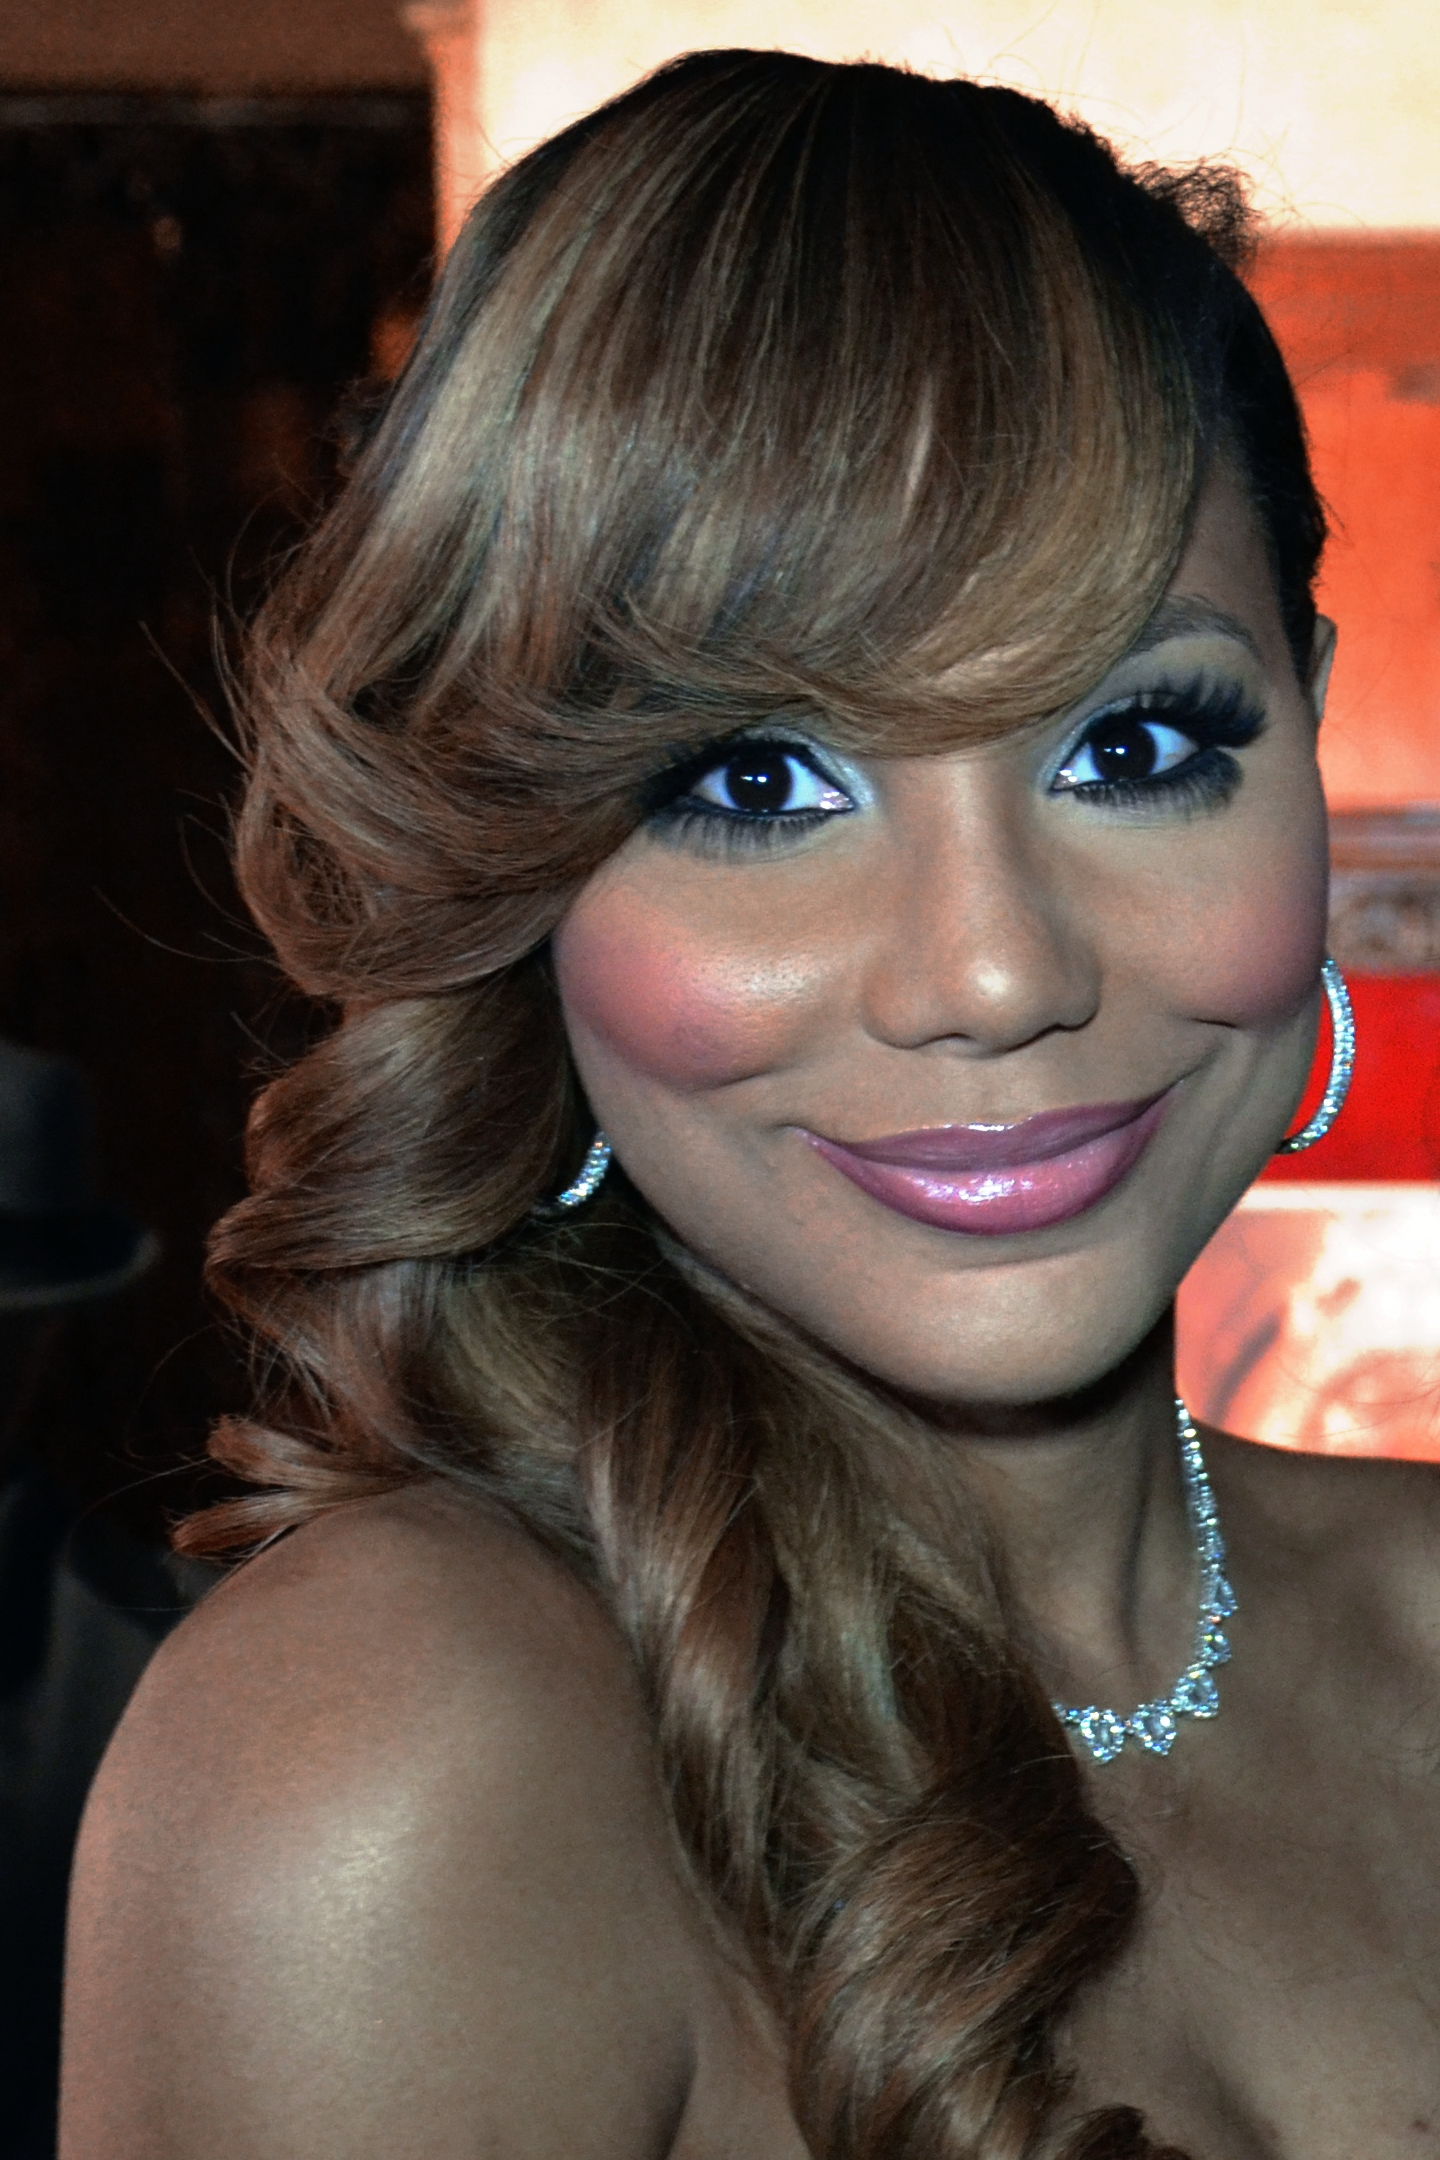 The 41-year old daughter of father Michael Braxton and mother Evelyn Braxton Tamar Braxton in 2018 photo. Tamar Braxton earned a  million dollar salary - leaving the net worth at 6 million in 2018